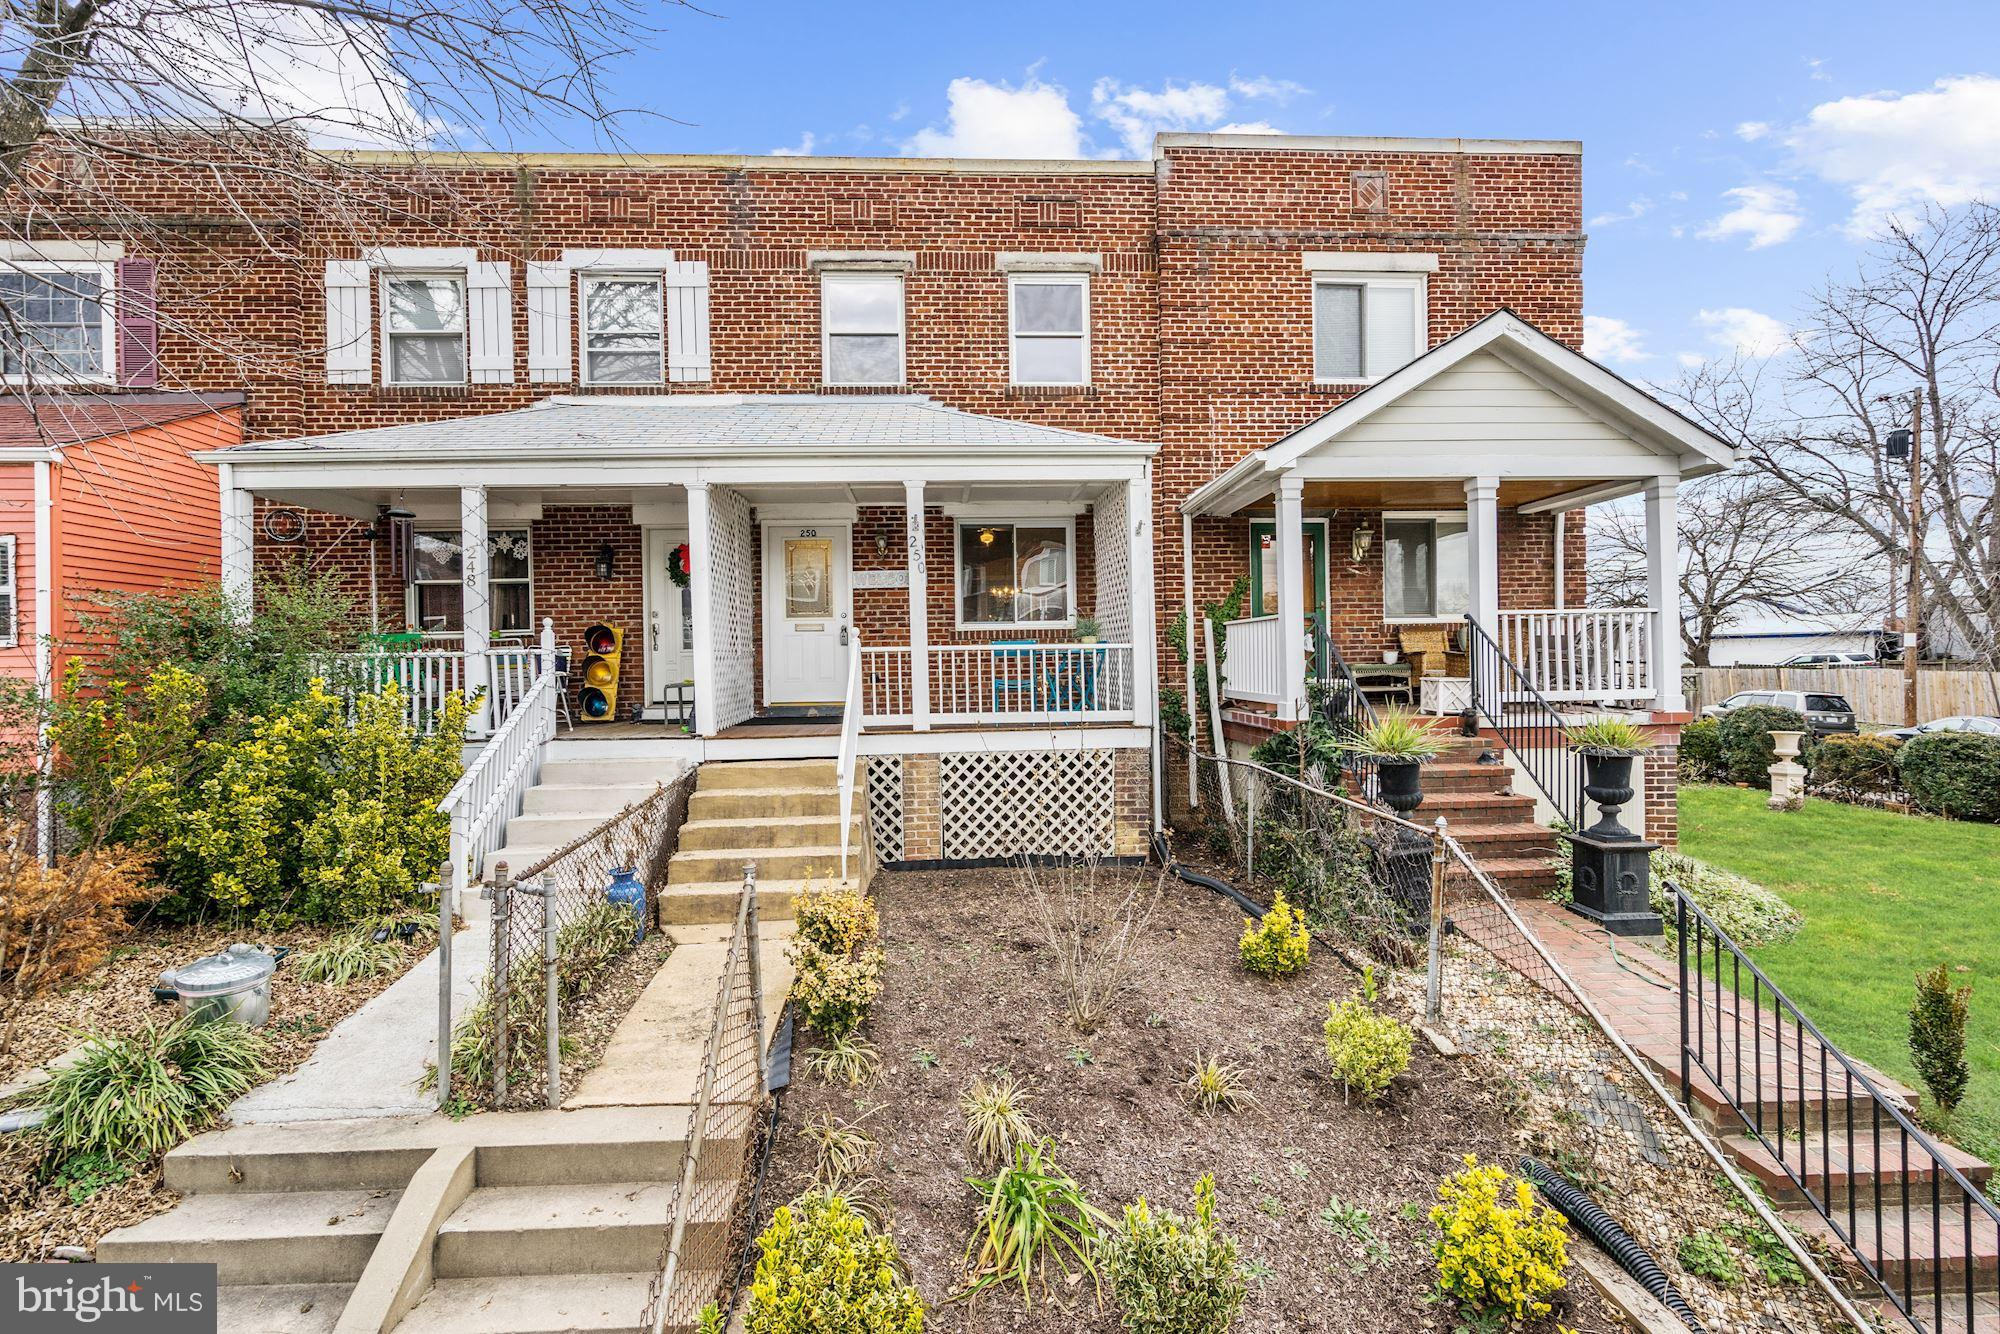 OPEN CANCELLED UNDER CONTRACT BEING SOLD AS IS - CHECK OUT HOME VISIT TOUR FRESHLY PAINTED, NEW CARPET, UPDATED BATH, NEWER WINDOWS, GREAT SUNROOM, LOVELY FRONT PORCH, STEPS FROM POTOMAC YARDS, METRO ACCESS VIA BUS OR WALK TO BRADDOCK ROAD, NEW METRO COMING, WALK OUT SUNROOM TO BACK DECK TO YOUR OWN PARKING IN BACK YARD, CAN BE CONVERTED TO A YARD IF DESIRED.  GREAT DEAL UNDER $500K